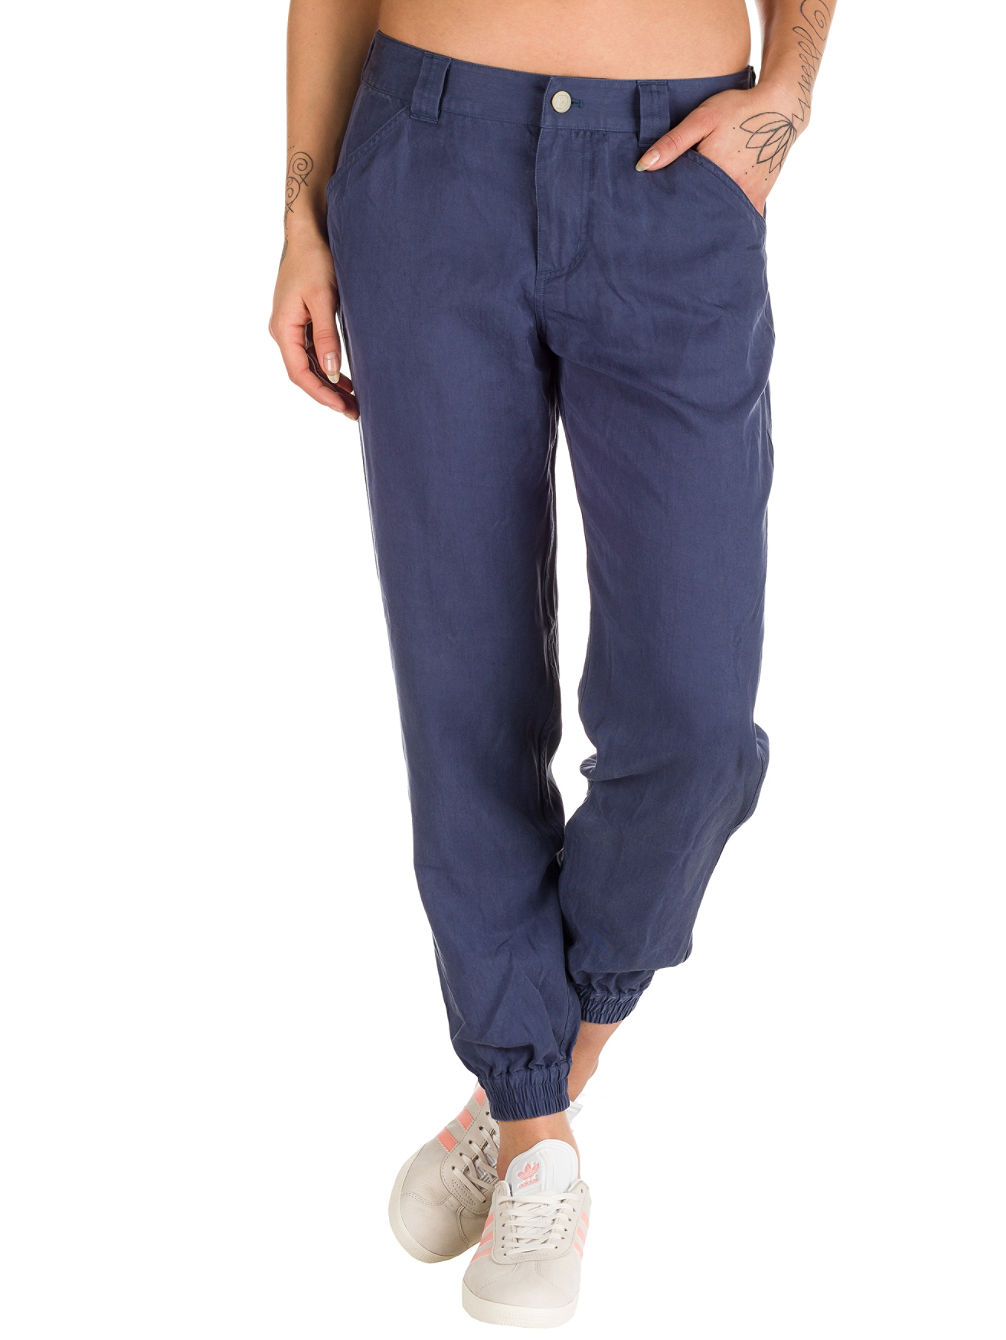 Edge Win Joggers Pants